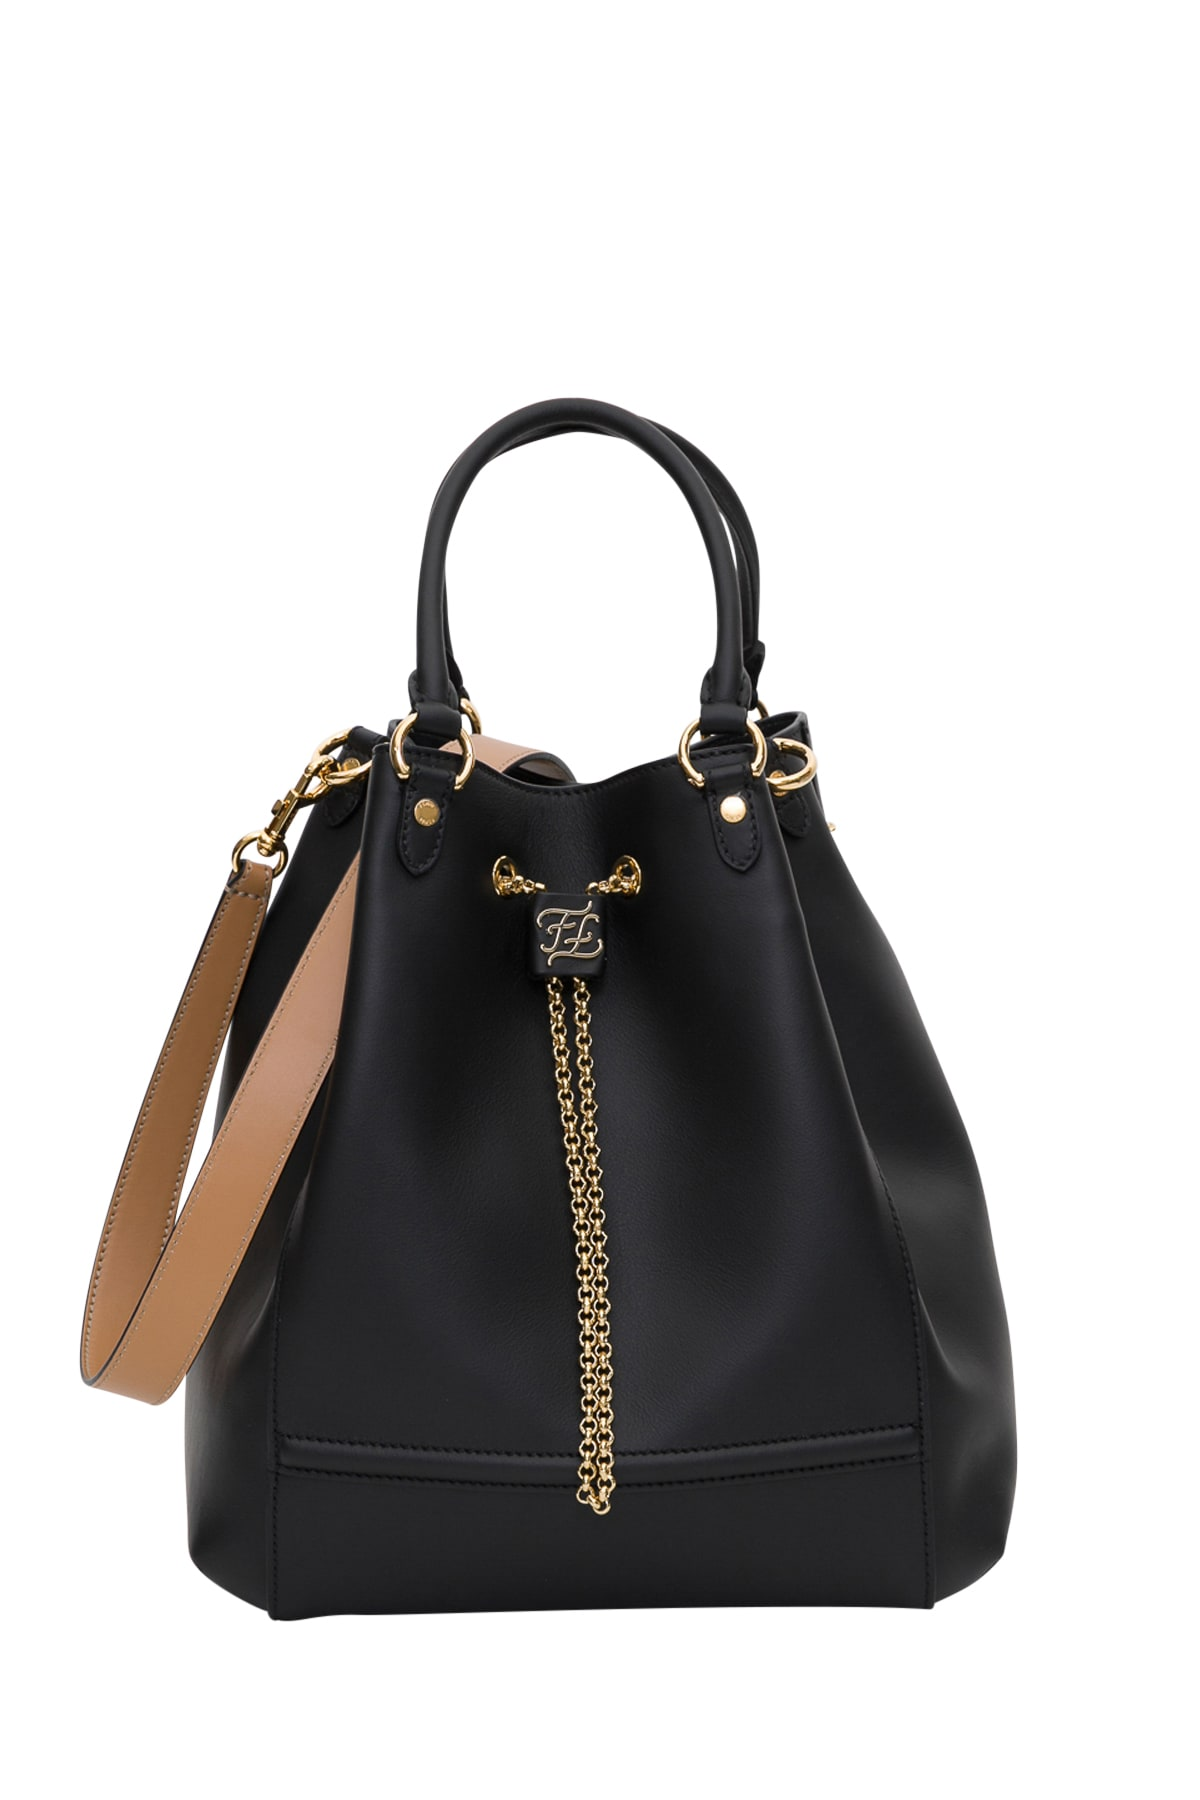 Fendi Chain Bucket Bag